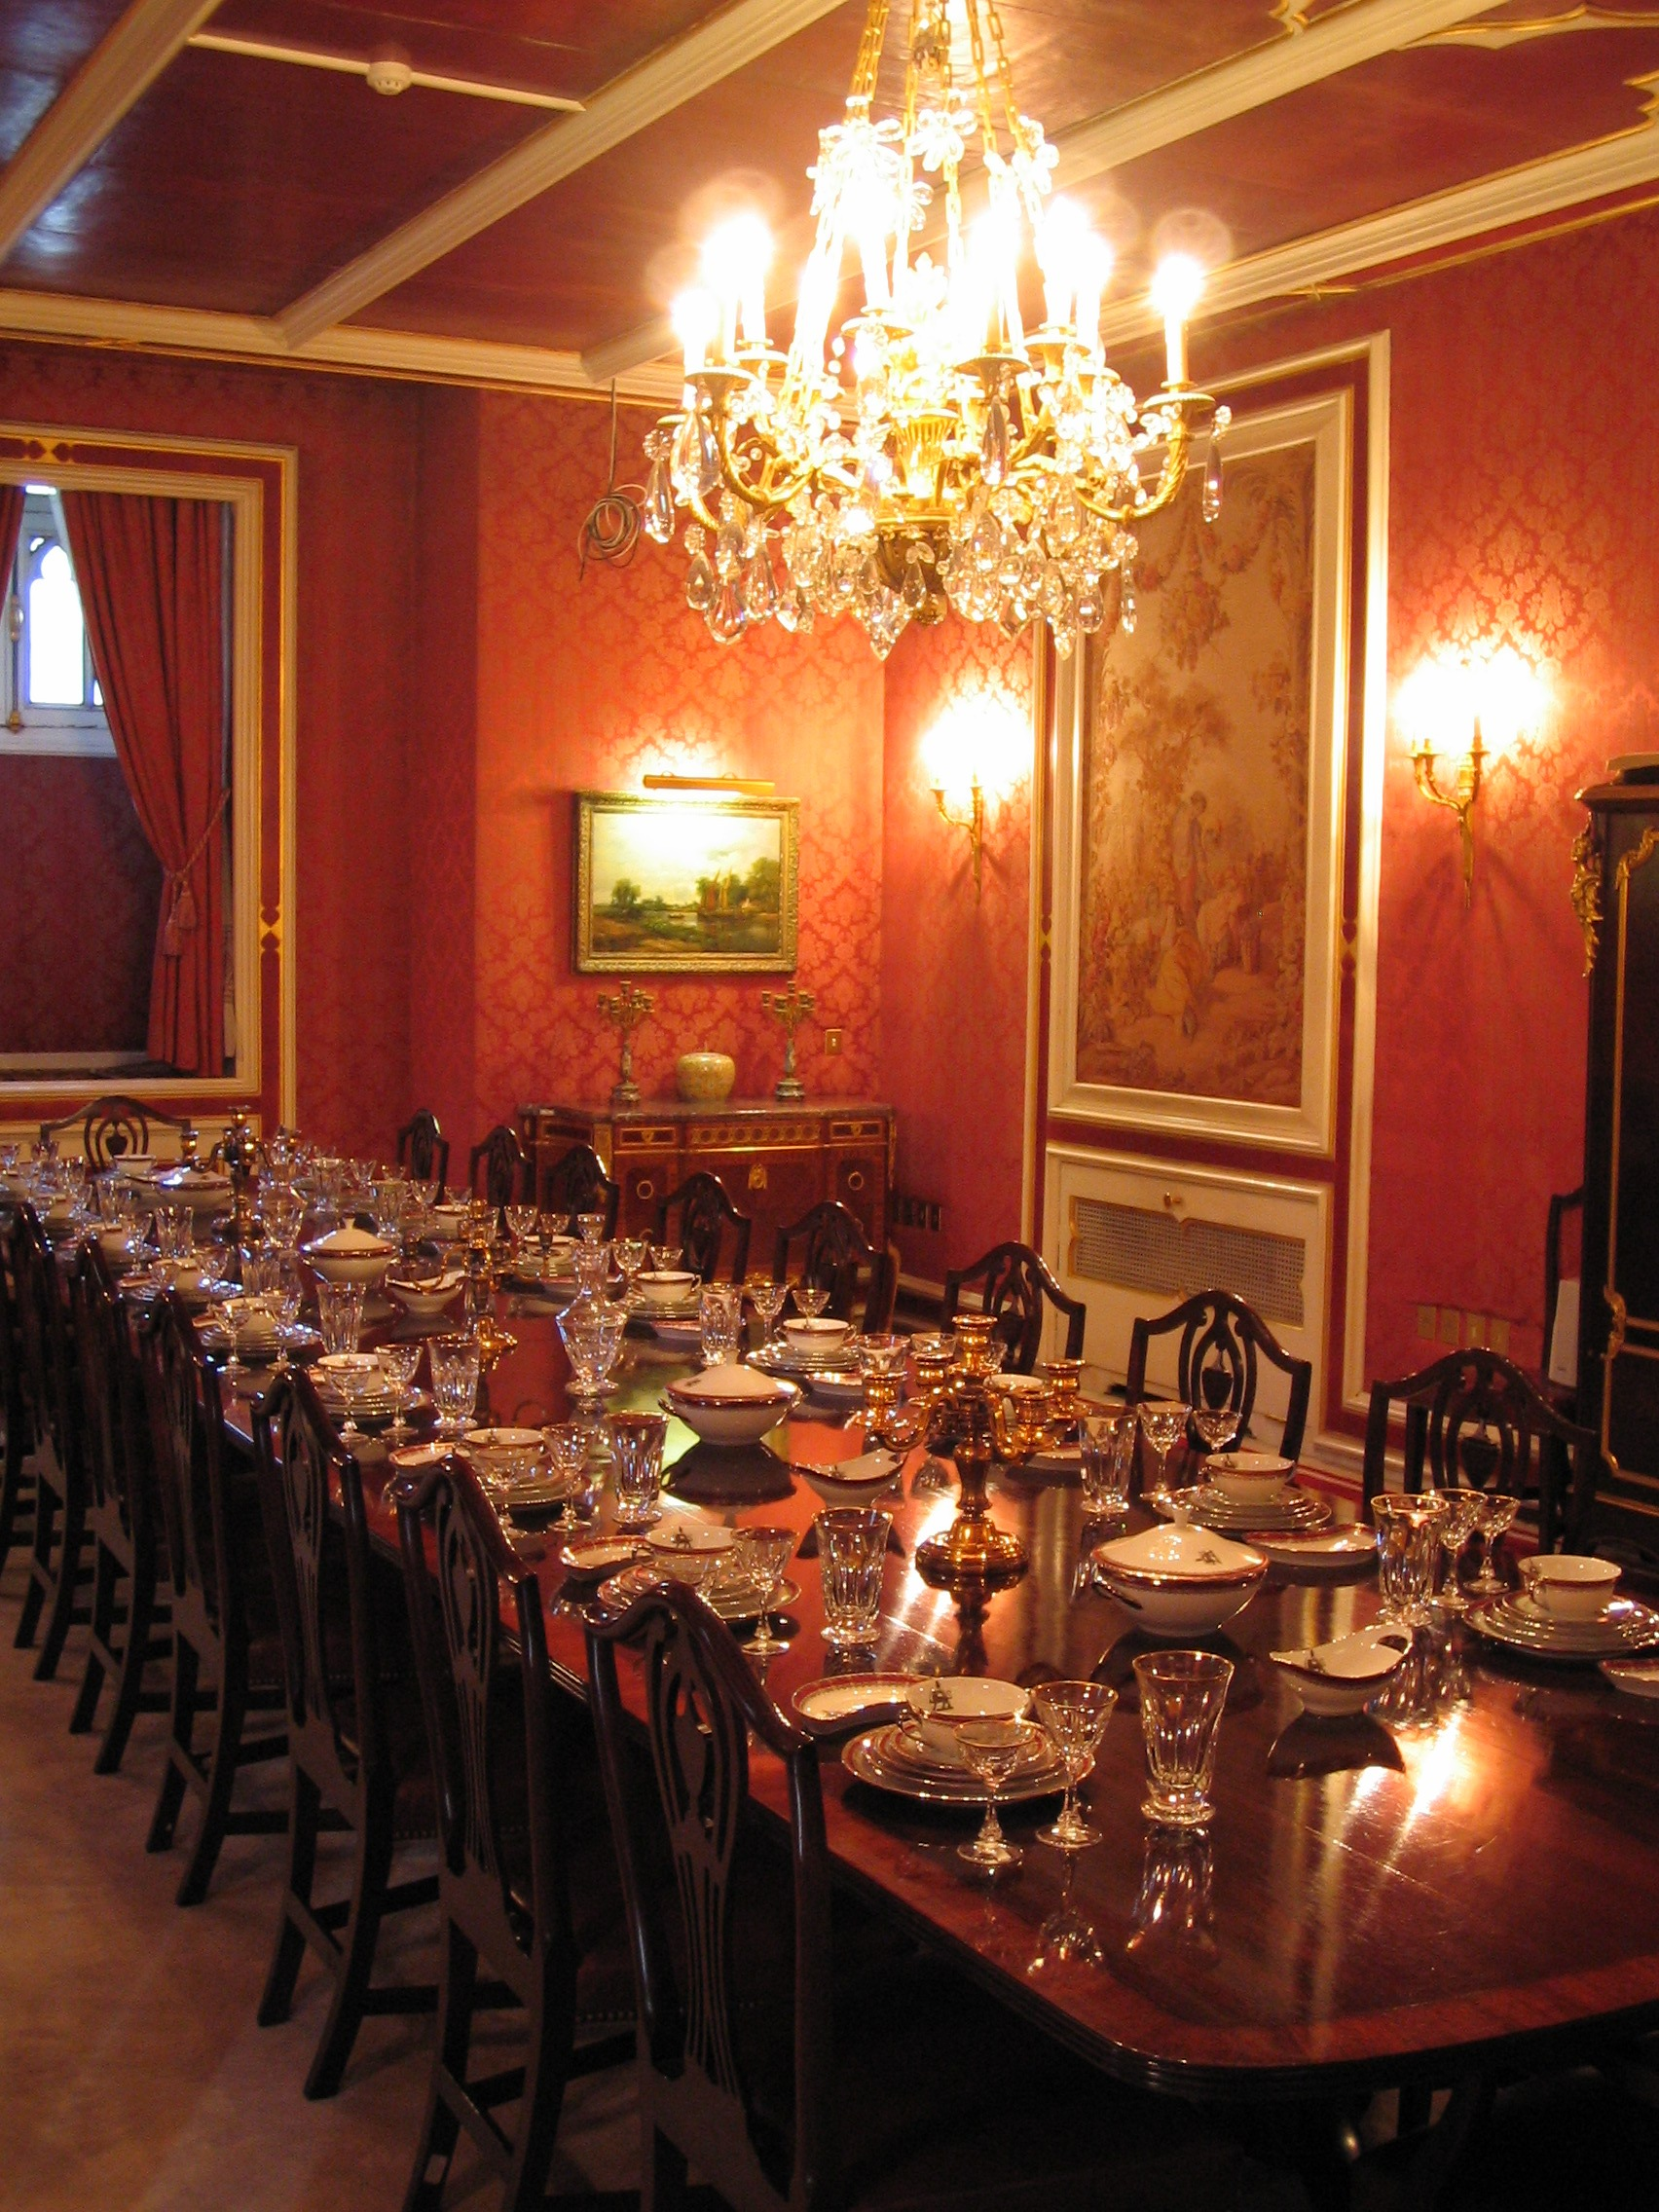 Palaces salles manger and int rieur du palais on pinterest for Dining room or there is nothing wiki